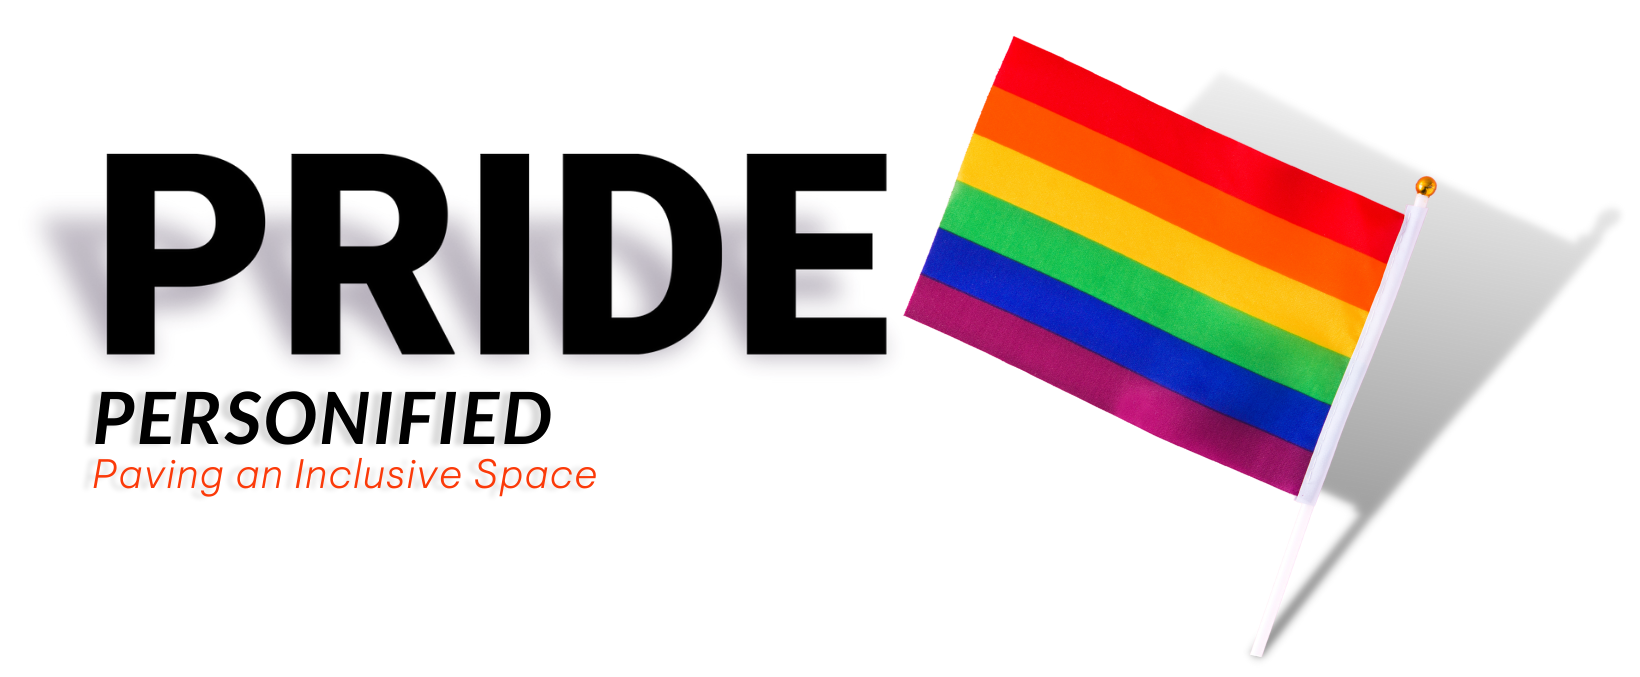 Pride Personified: Paving an Inclusive Space